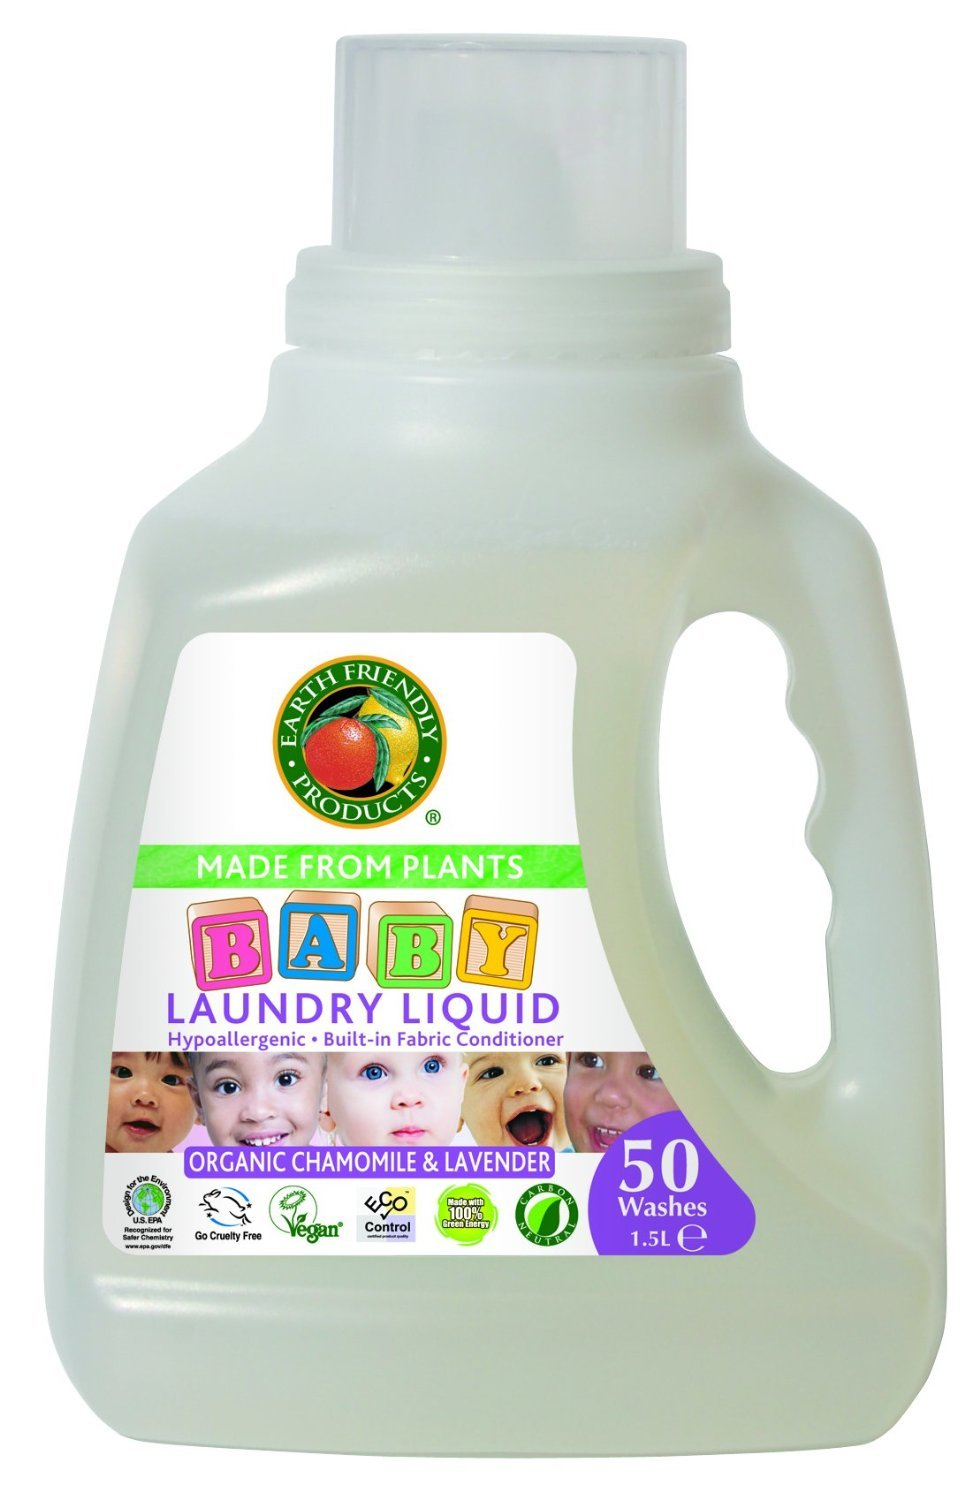 (3 PACK) - Earth Friendly Products - Baby Laundry Liquid | 1500ml | 3 PACK BUNDLE